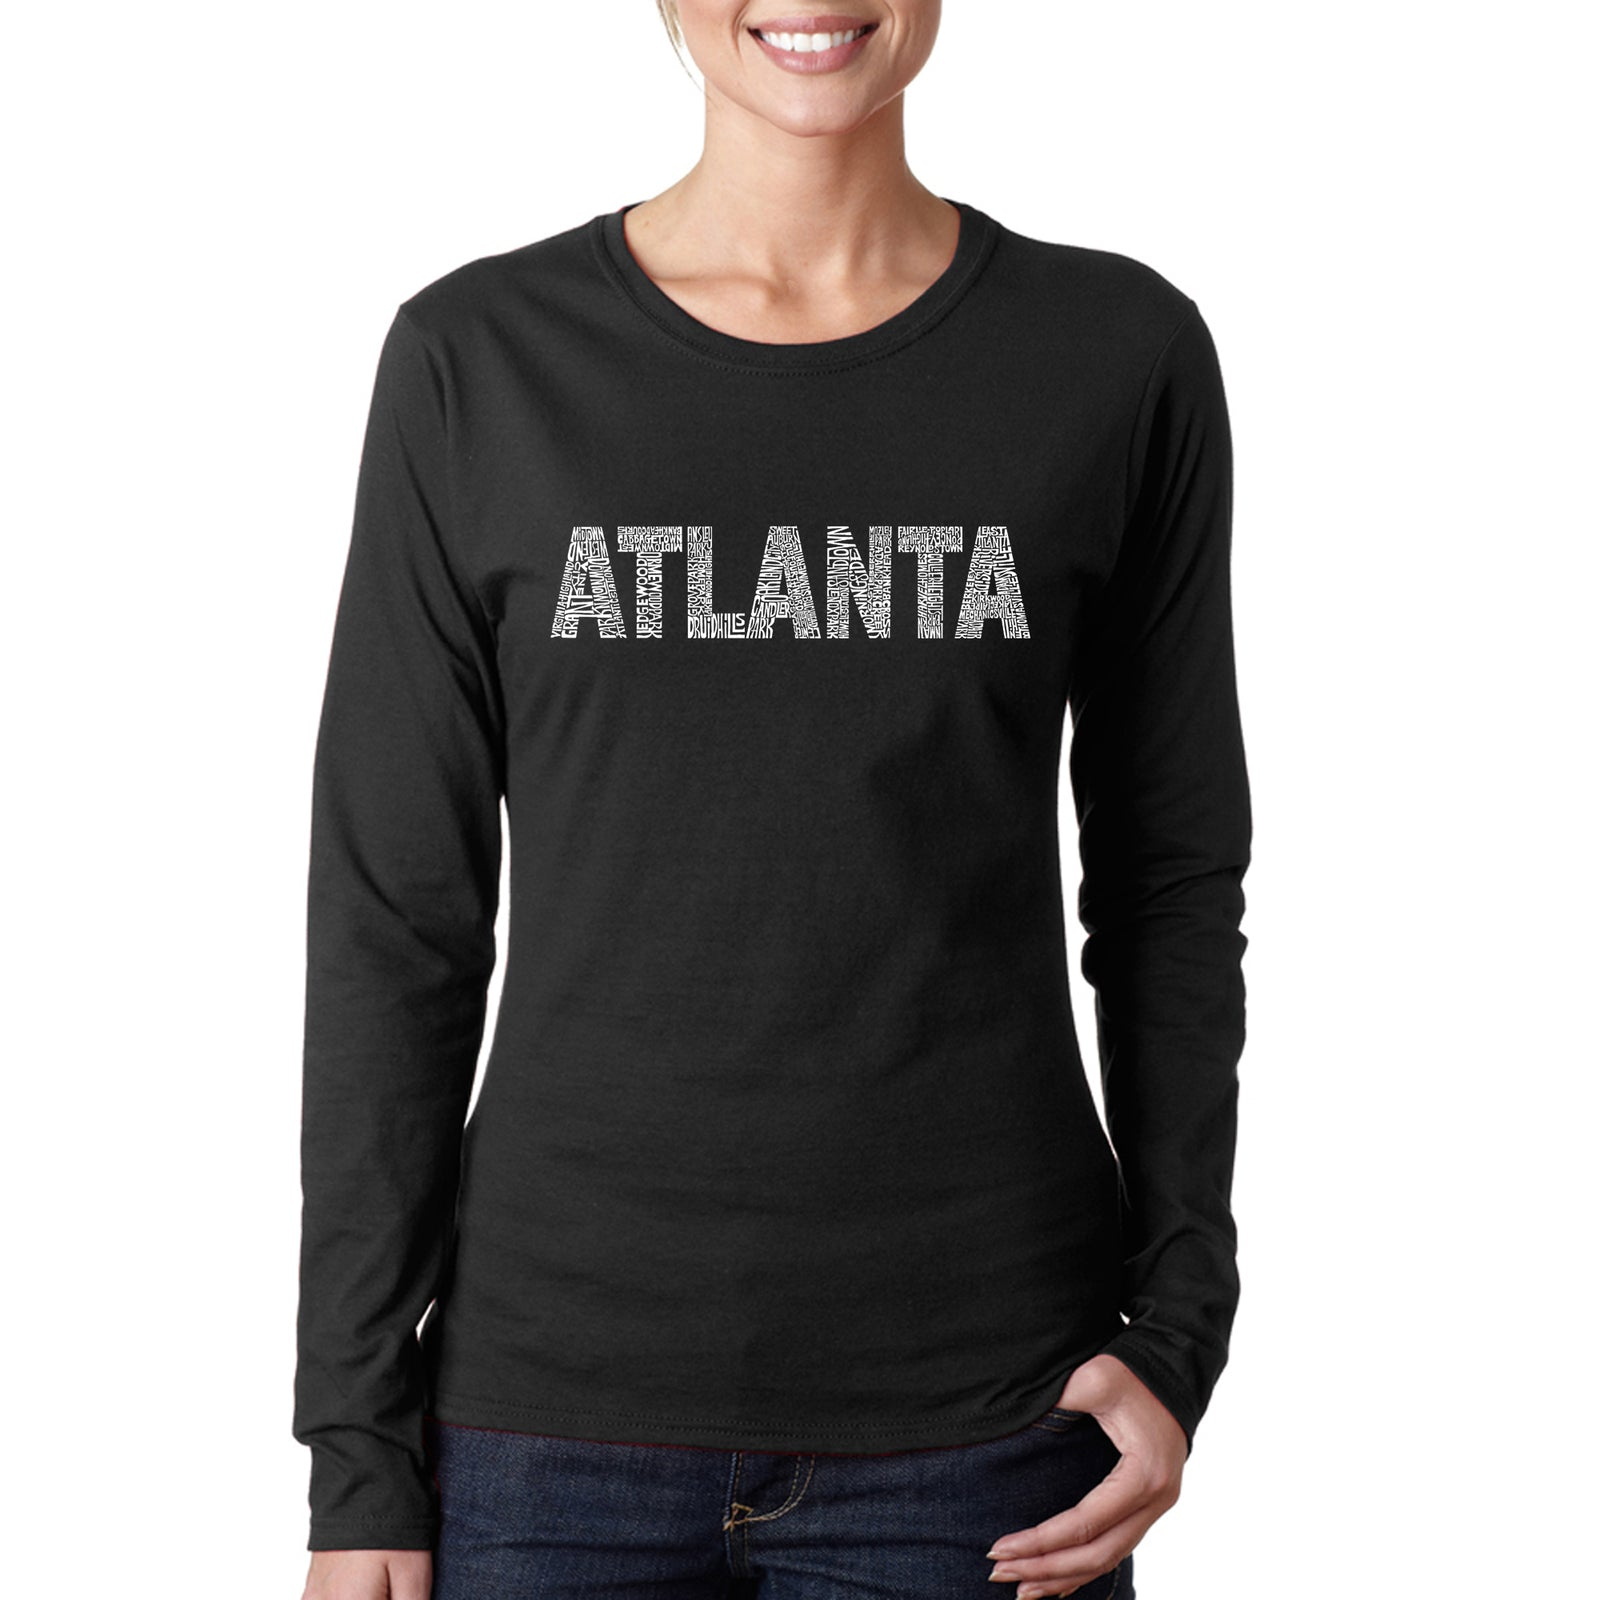 Women's Long Sleeve T-Shirt - ATLANTA NEIGHBORHOODS